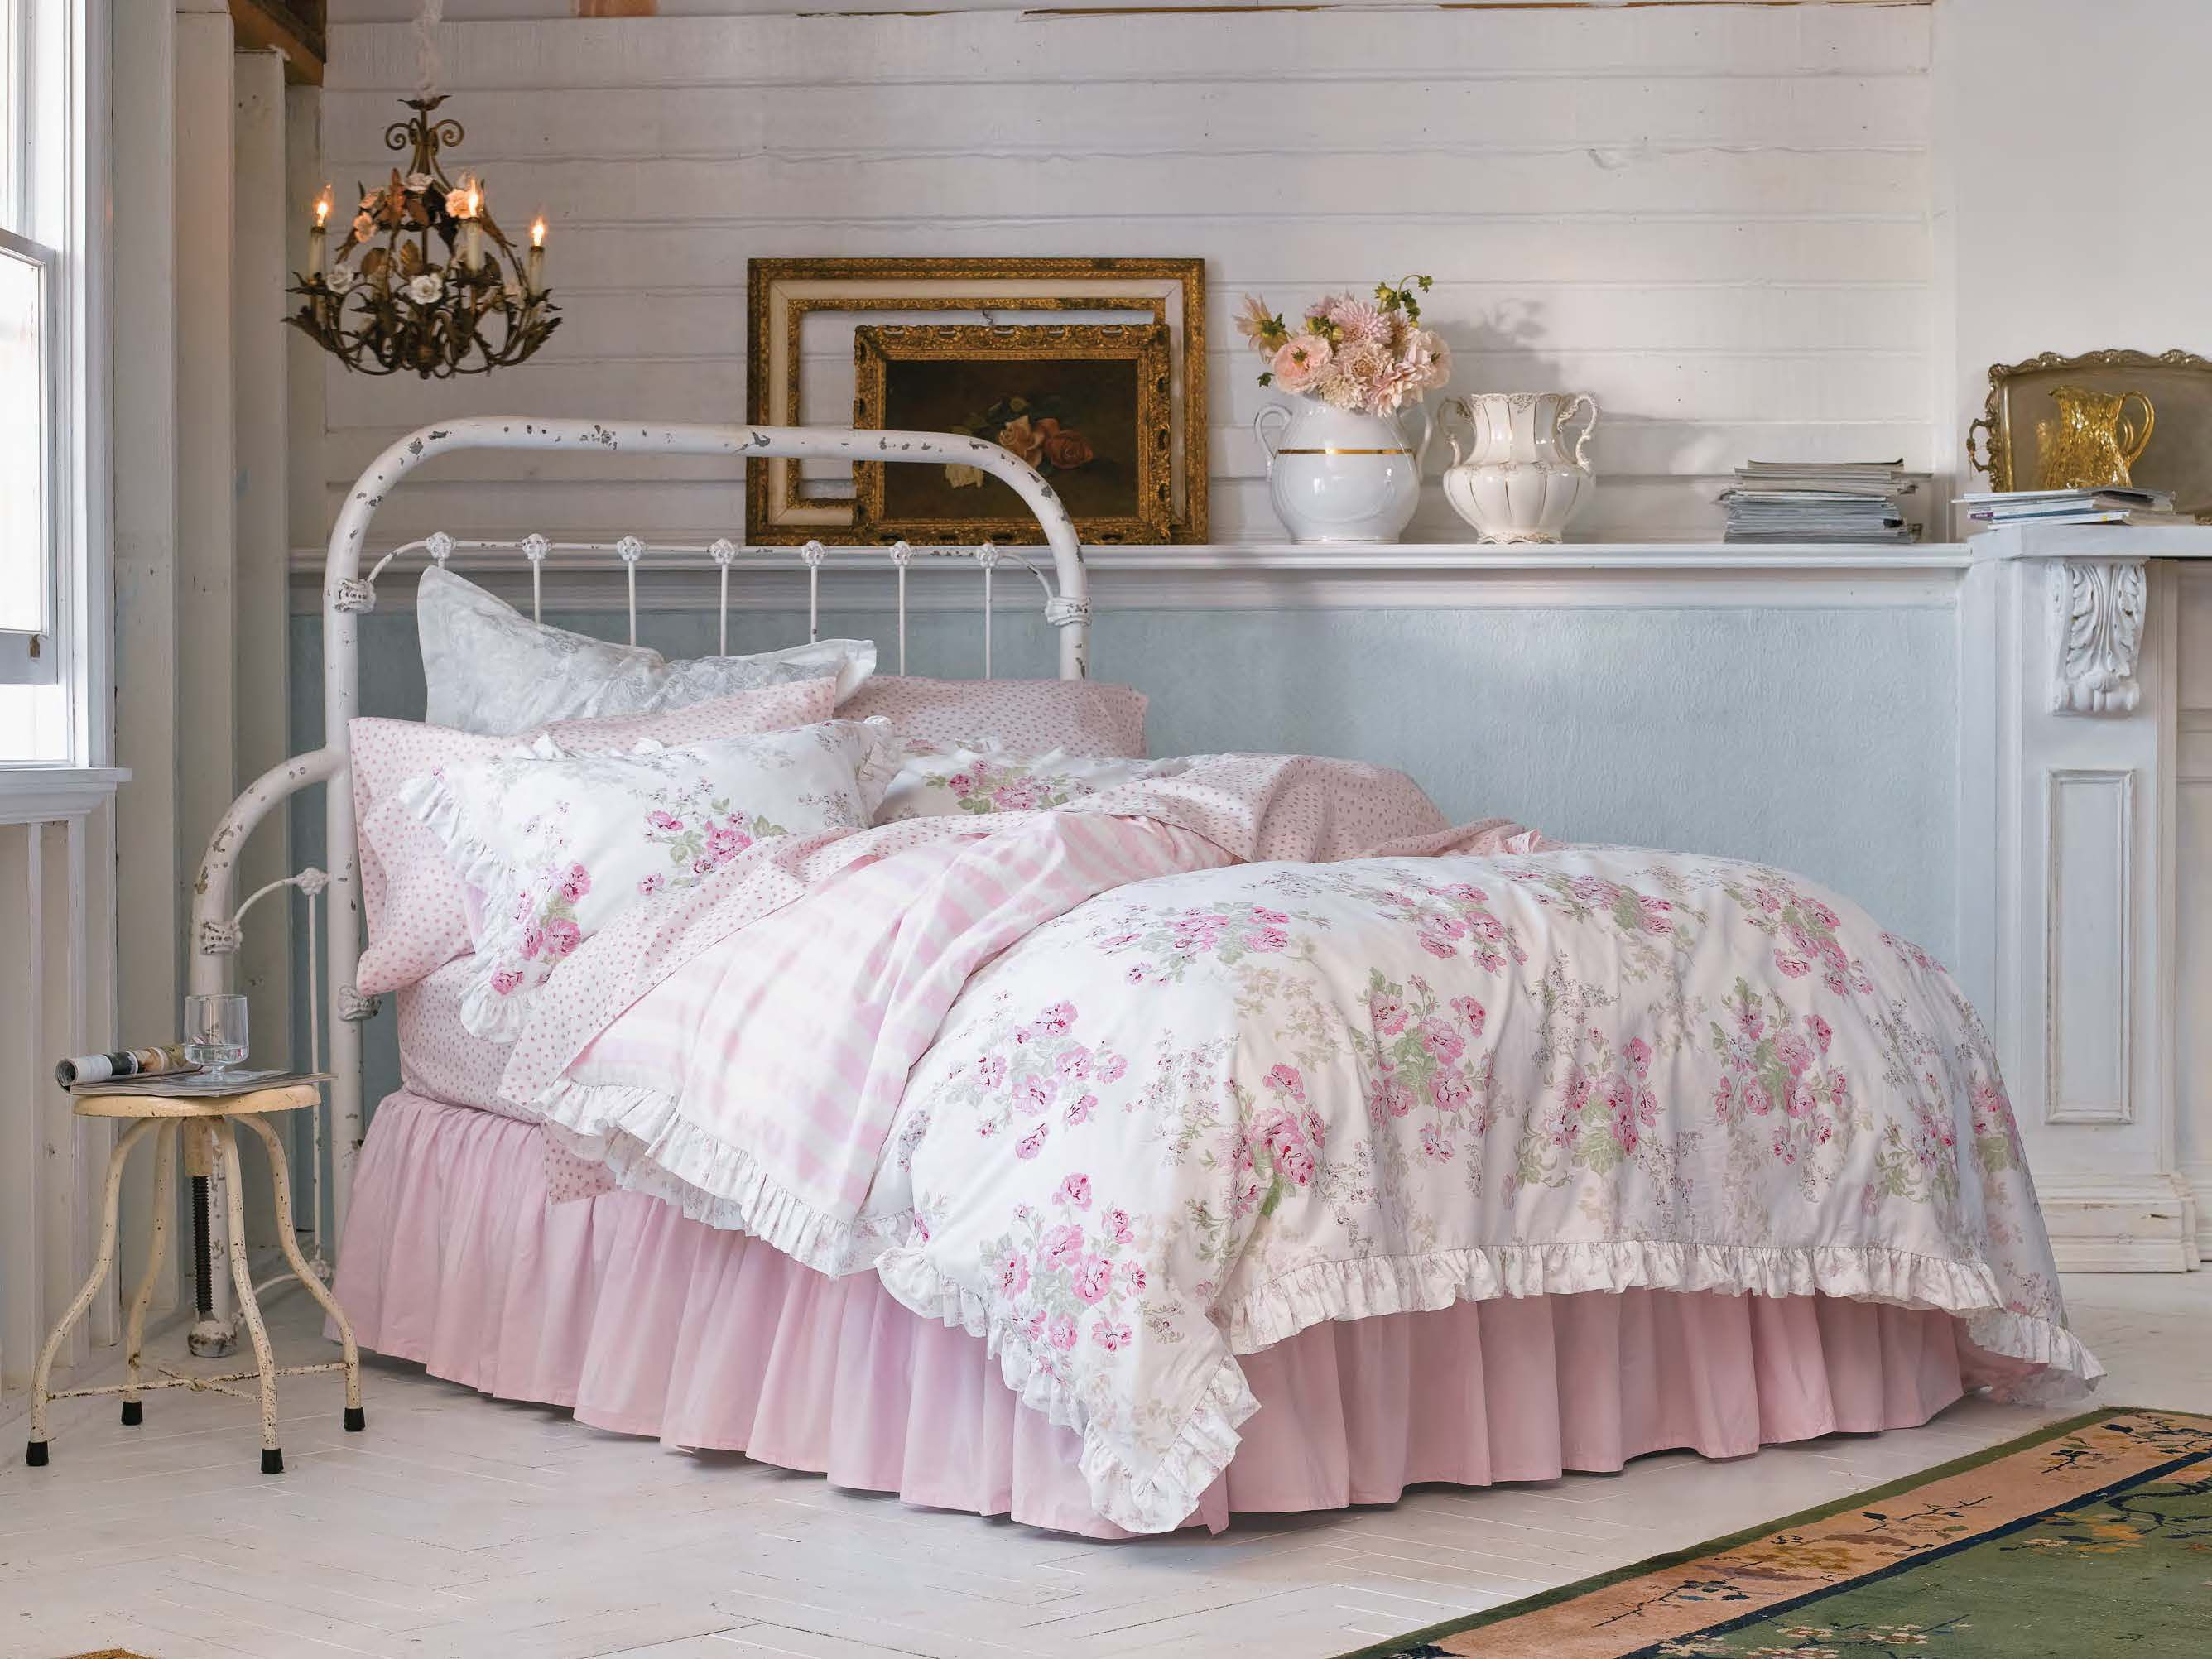 Pin By Dale Dhm On Simply Shabby Chic Shabby Chic Bedroom Furniture Shabby Chic Bedding Shabby Chic Room